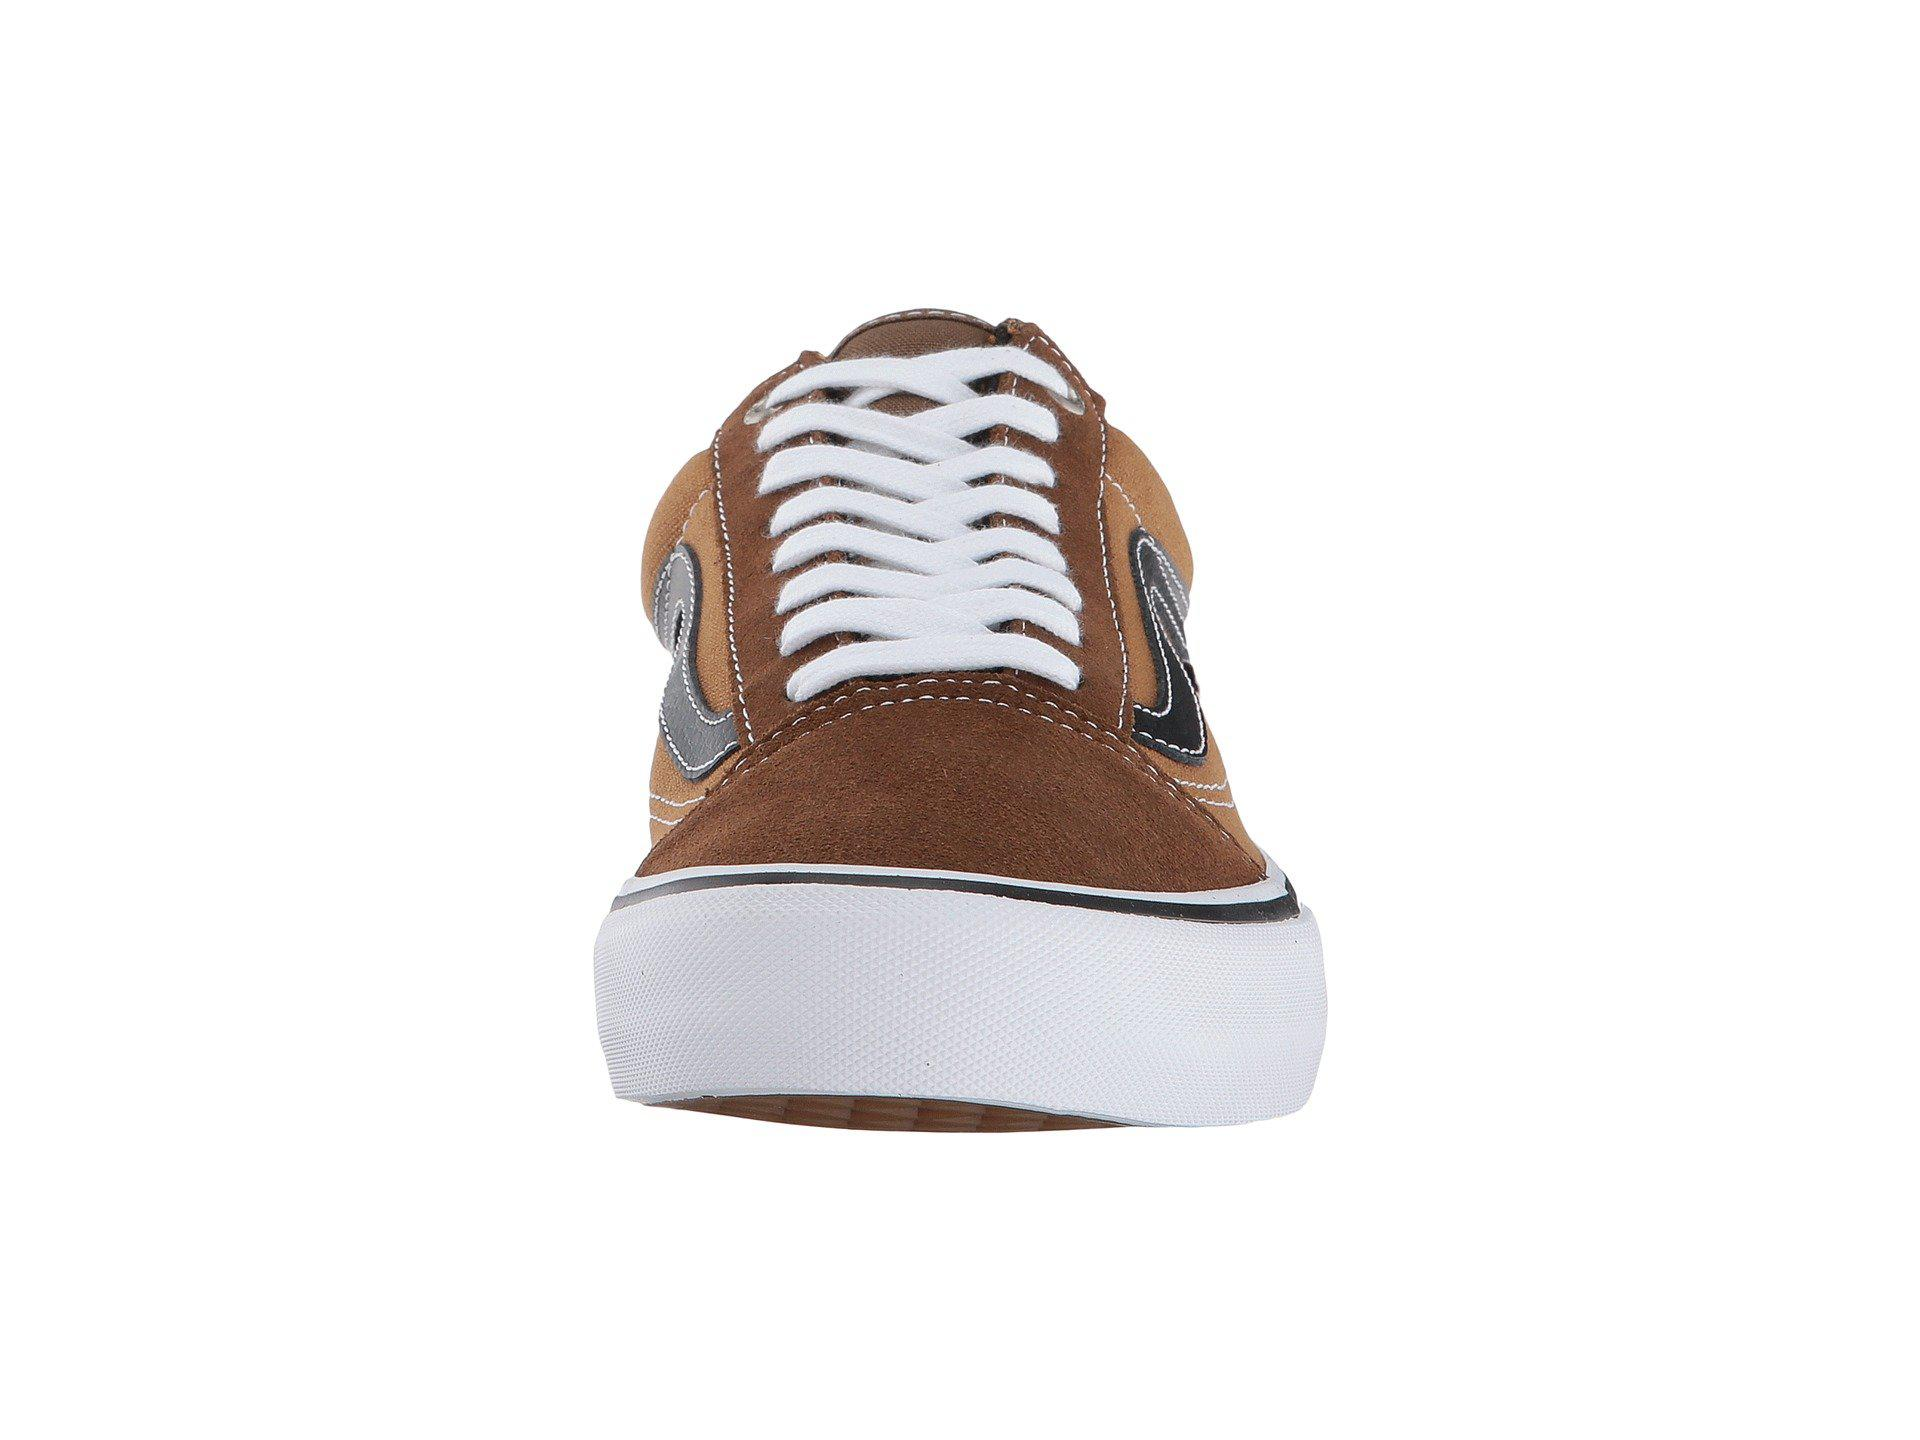 3f1c6fb7fe Gallery. Previously sold at  Zappos · Men s Vans Old Skool ...